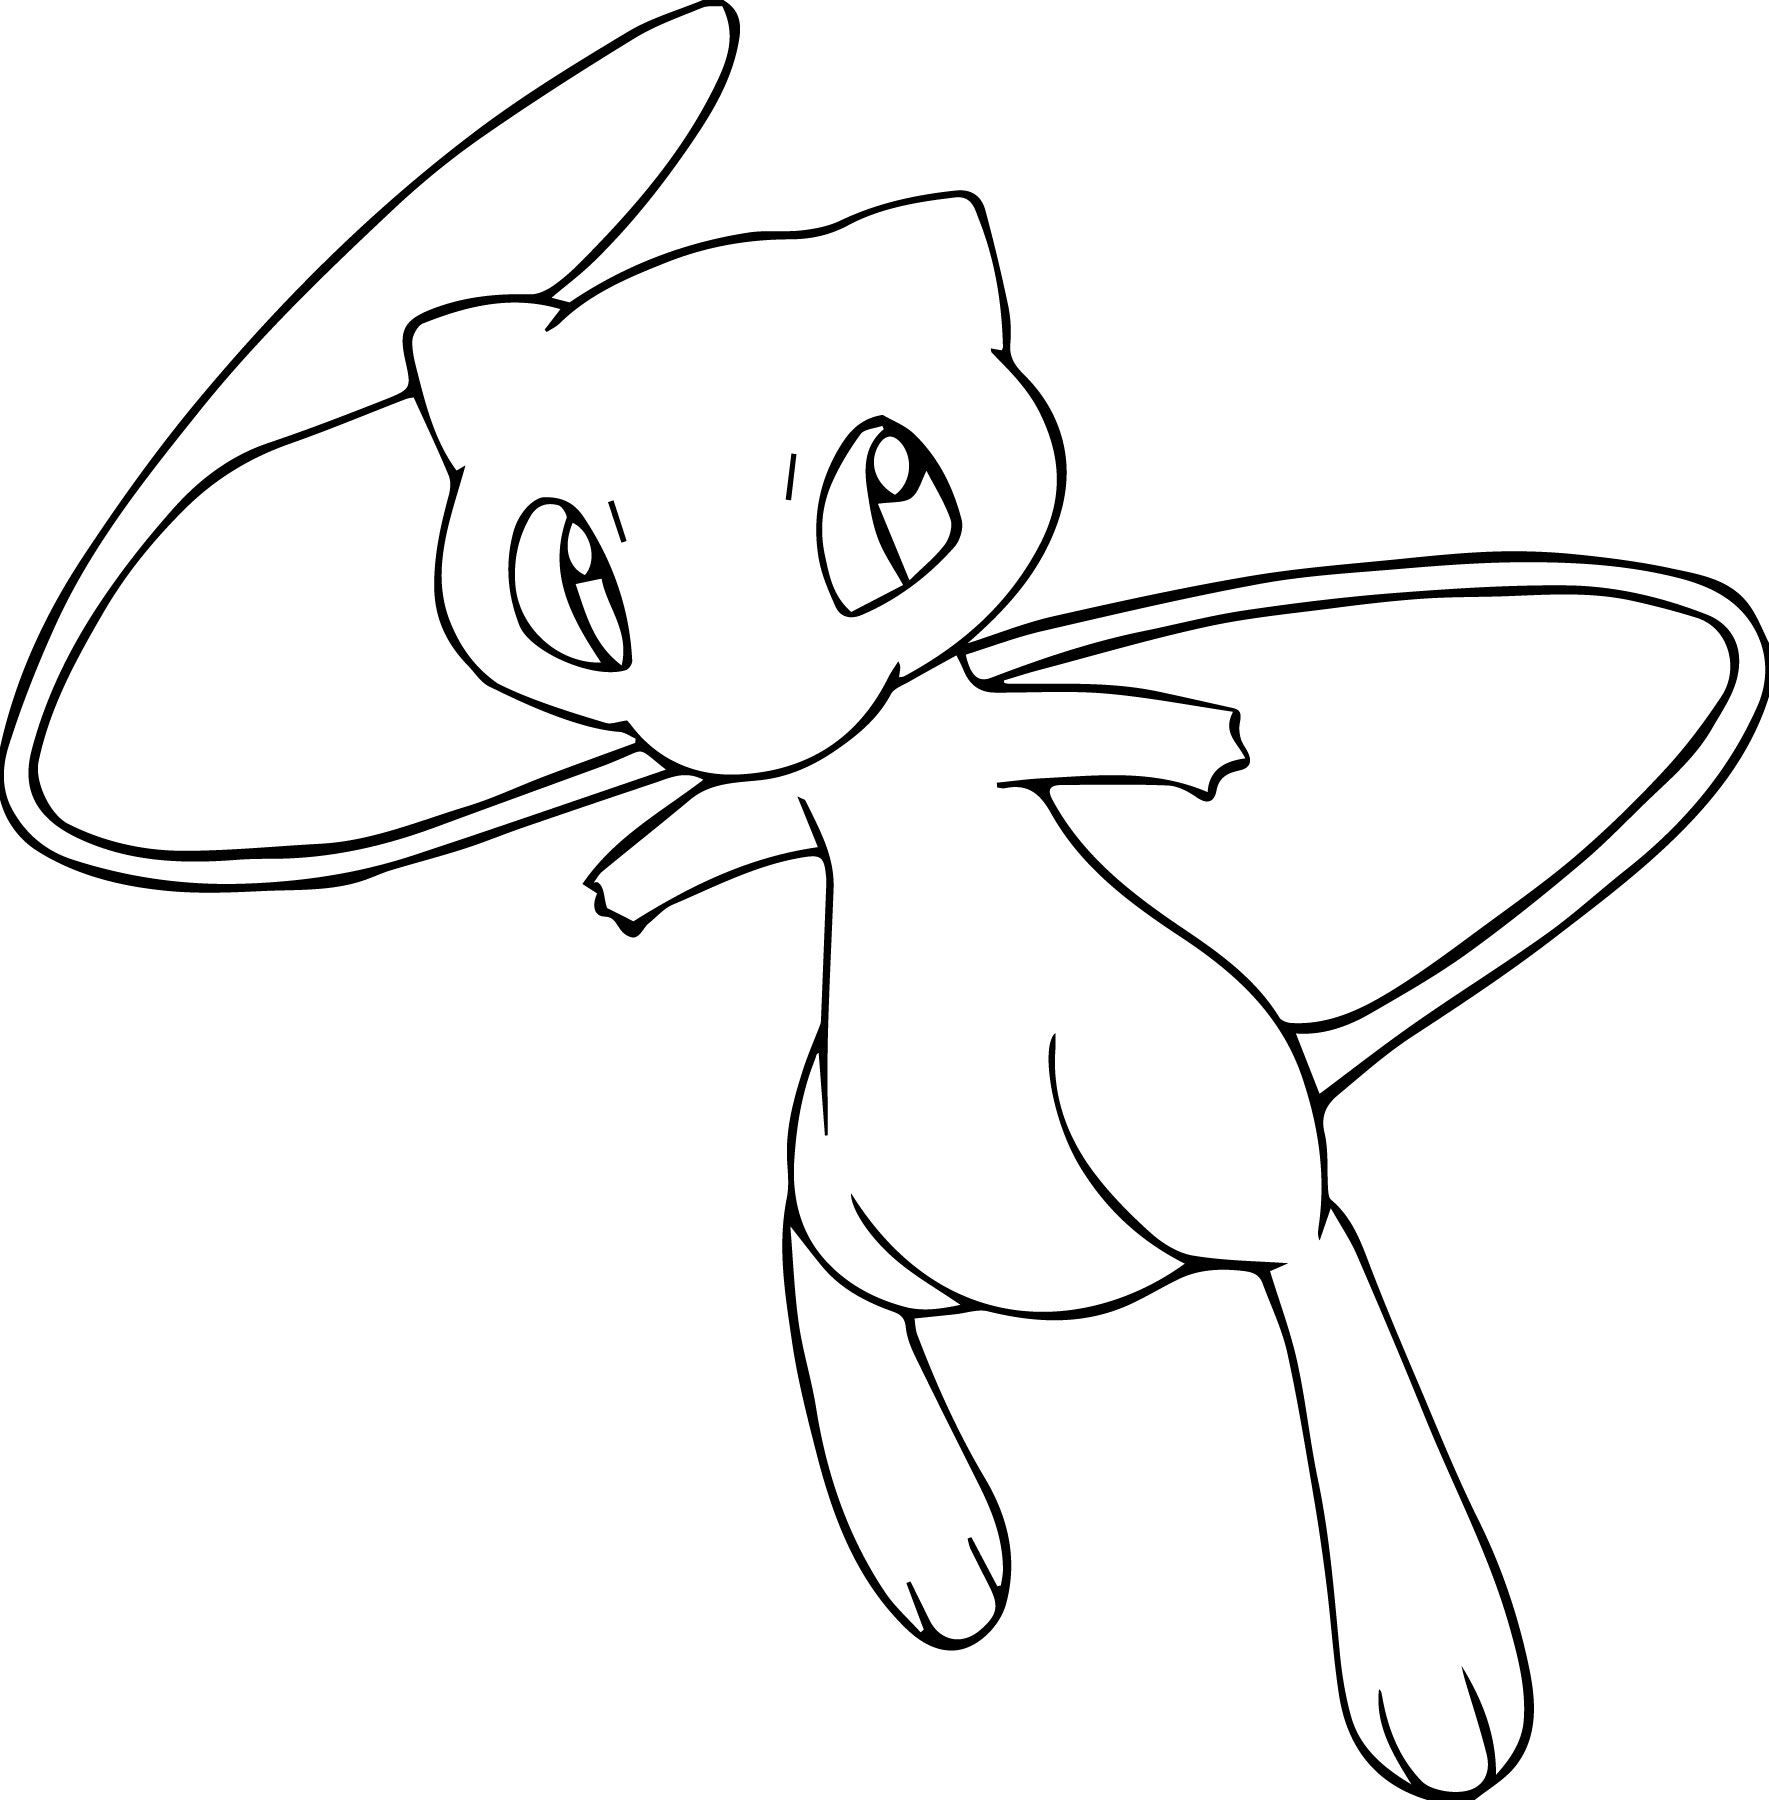 Mew Coloring Page Best Coloring Page Pokemon Coloring Pages Coloring Pages Cute Coloring Pages